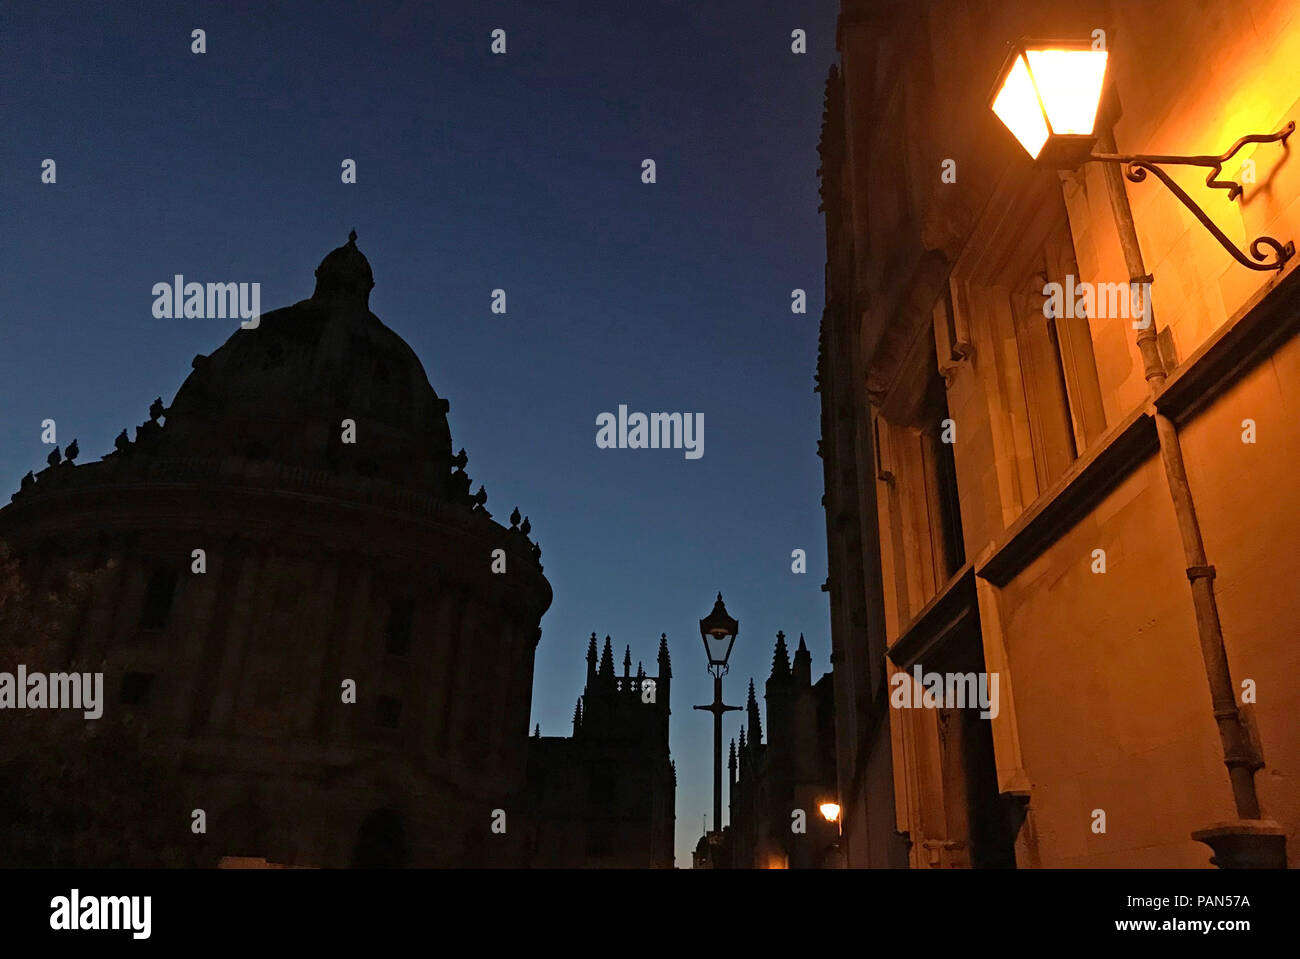 @HotpixUK,GoTonySmith,Oxford,city,city centre,Cottswold,South East England,England,UK,GB,Great Britain,classic,locations,dusk,evening,night,tourist,tourists,things to see,lighting,street,road,city centre streets,Oxfordshire streets,Oxfordshire,streets